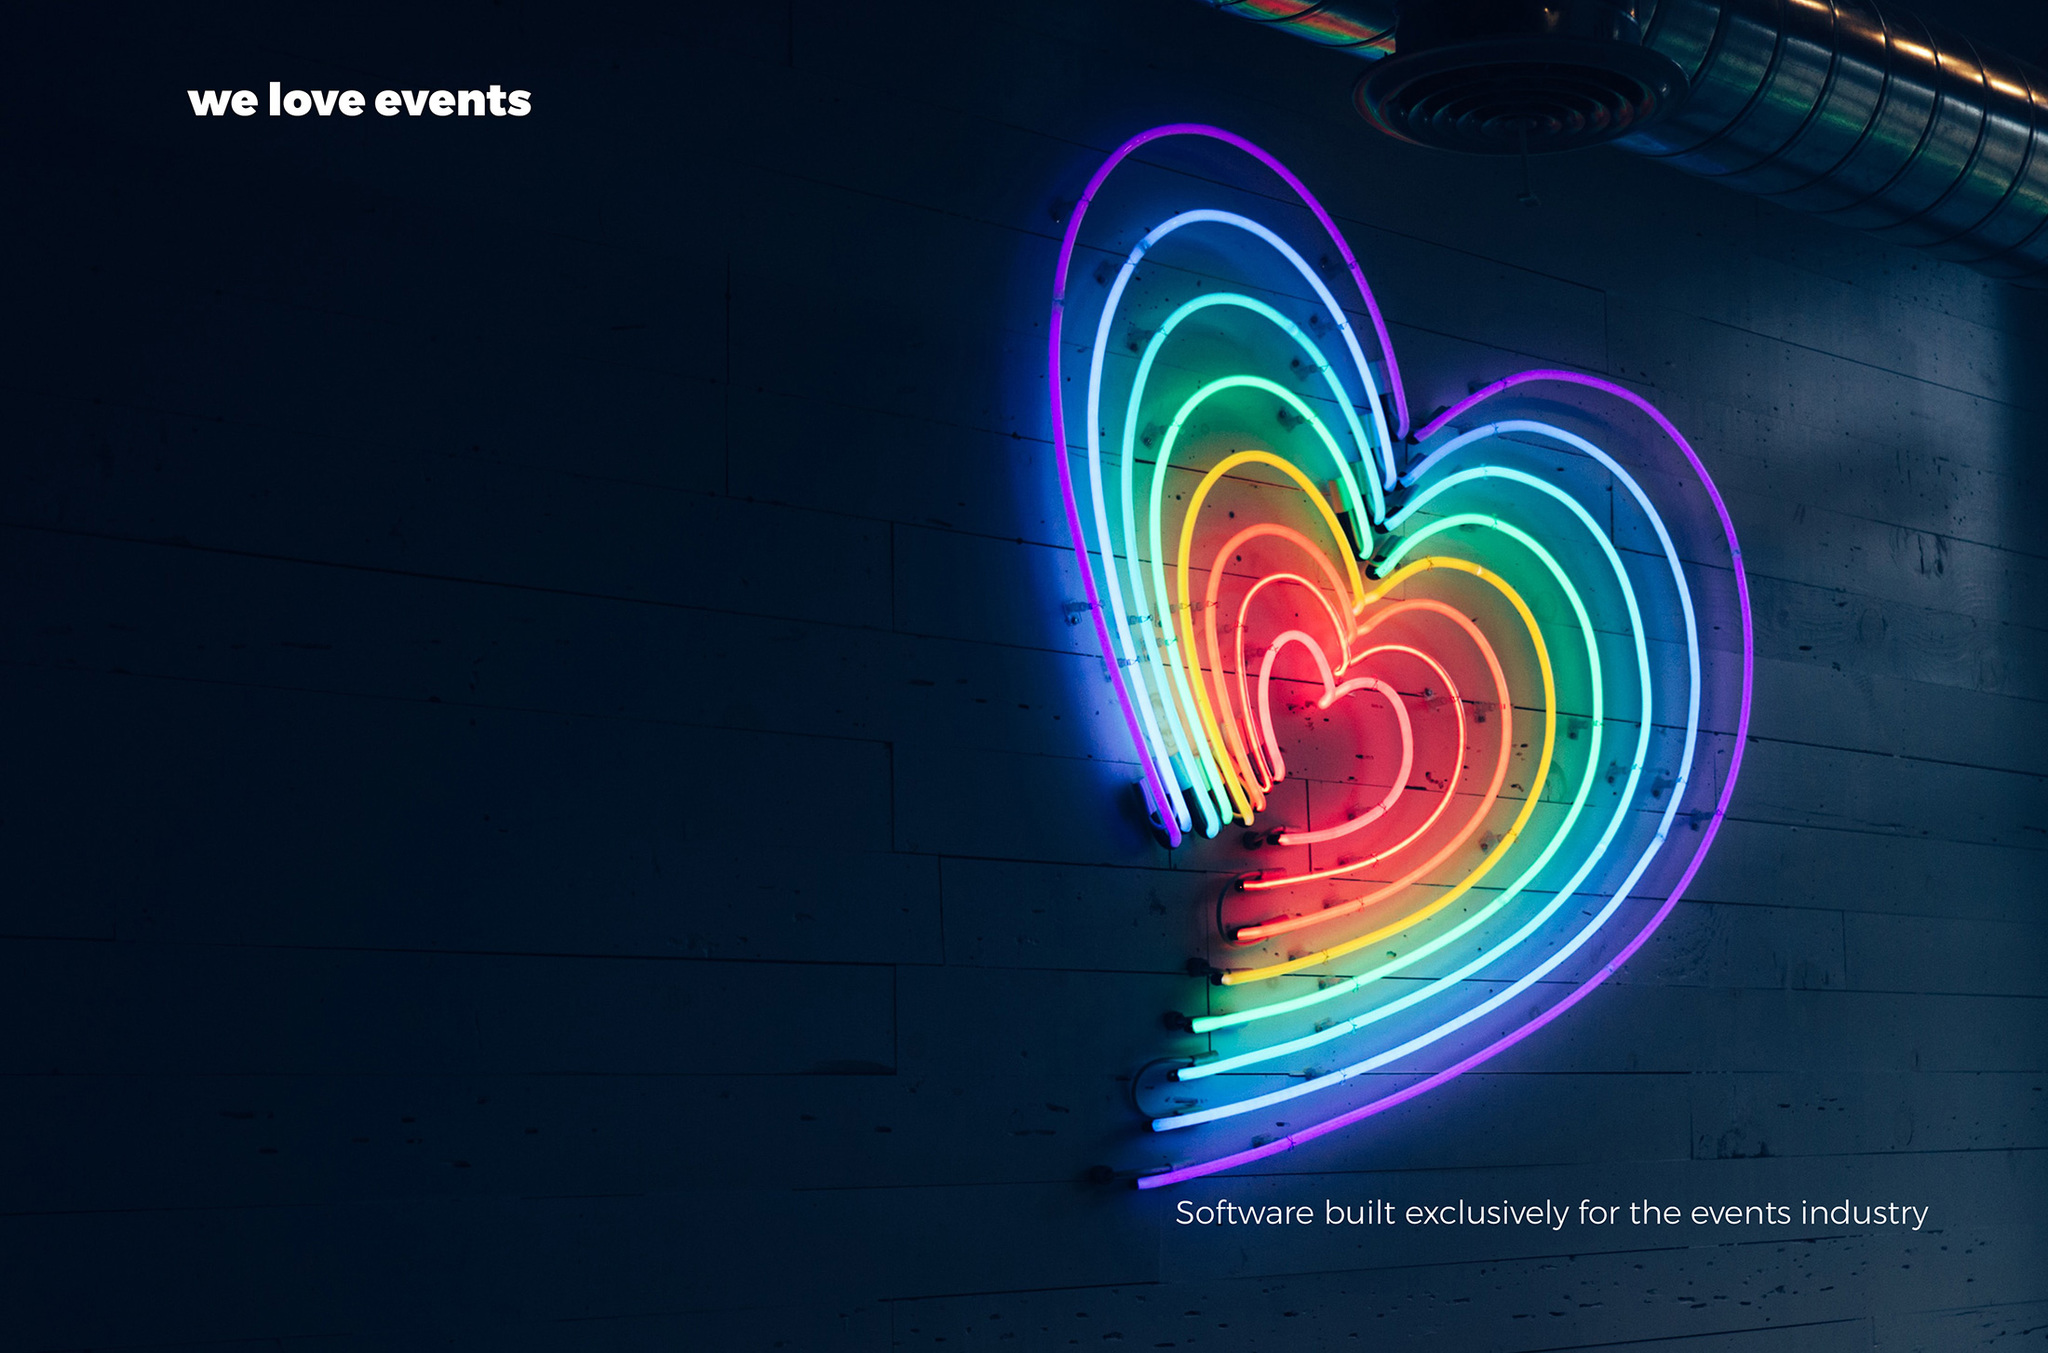 Evessio - We love events